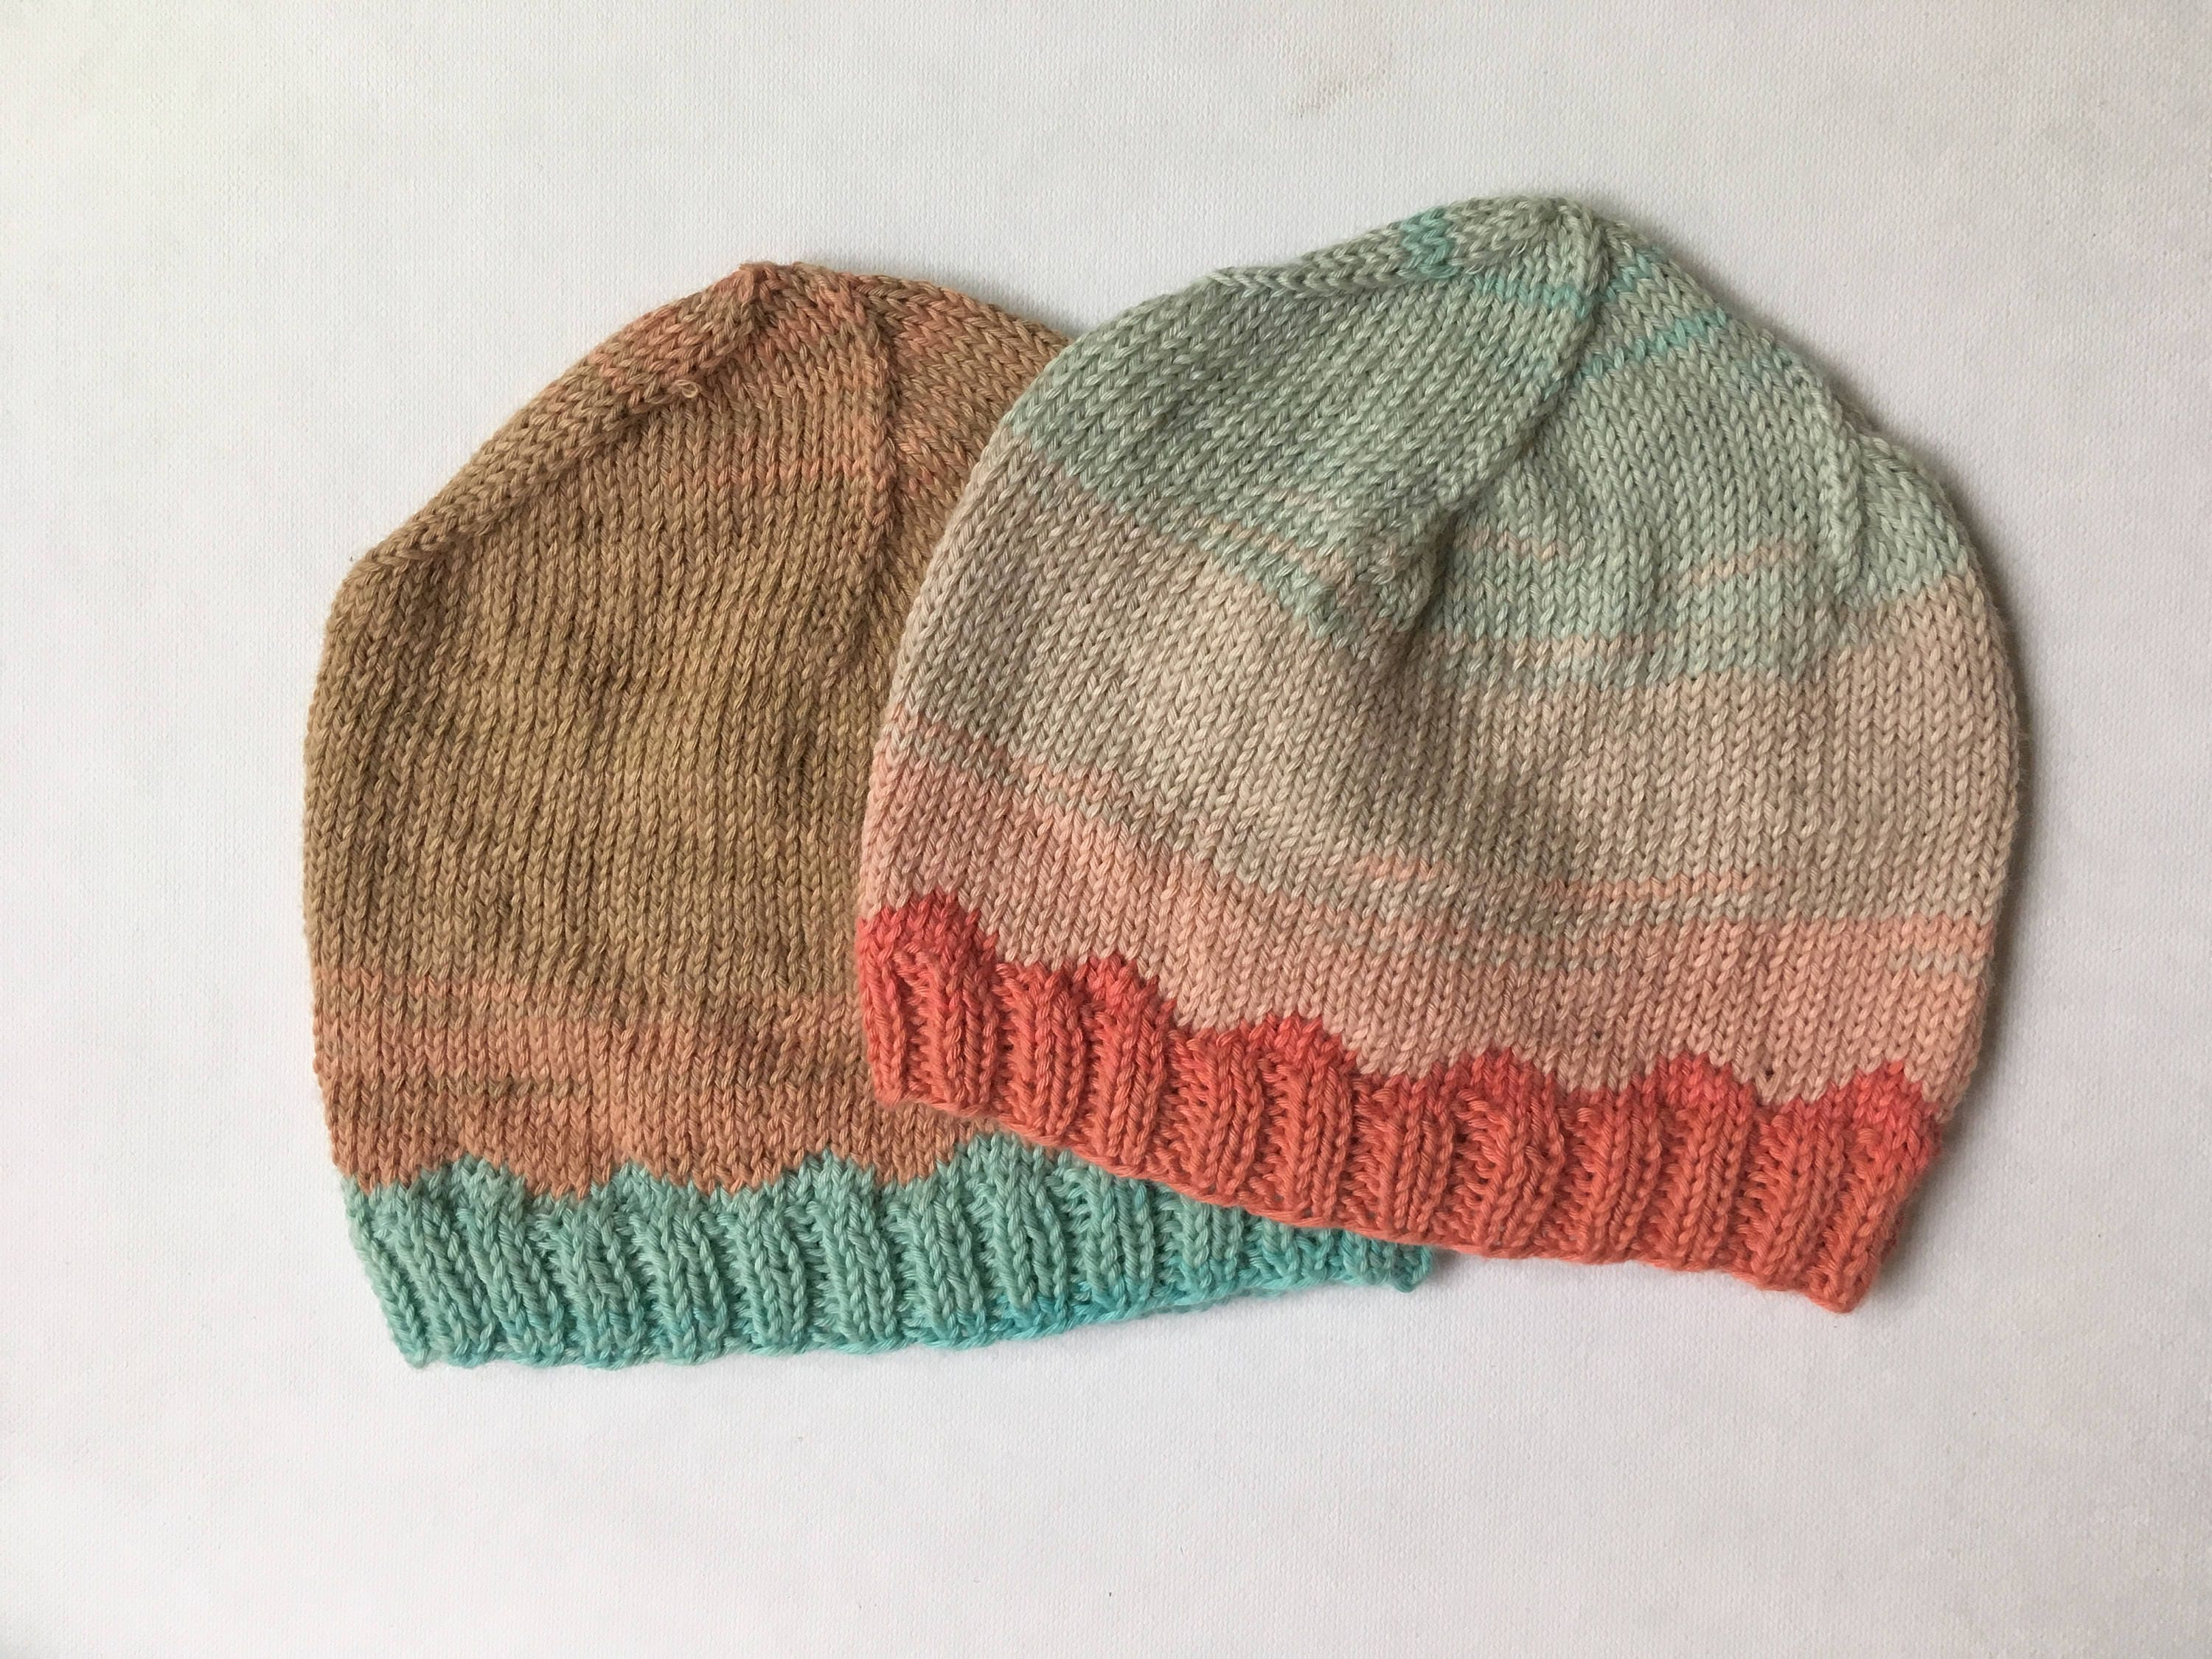 KNITTING PATTERN - Just Keep Swimming NICU Baby Hat, Preemie Hat ...